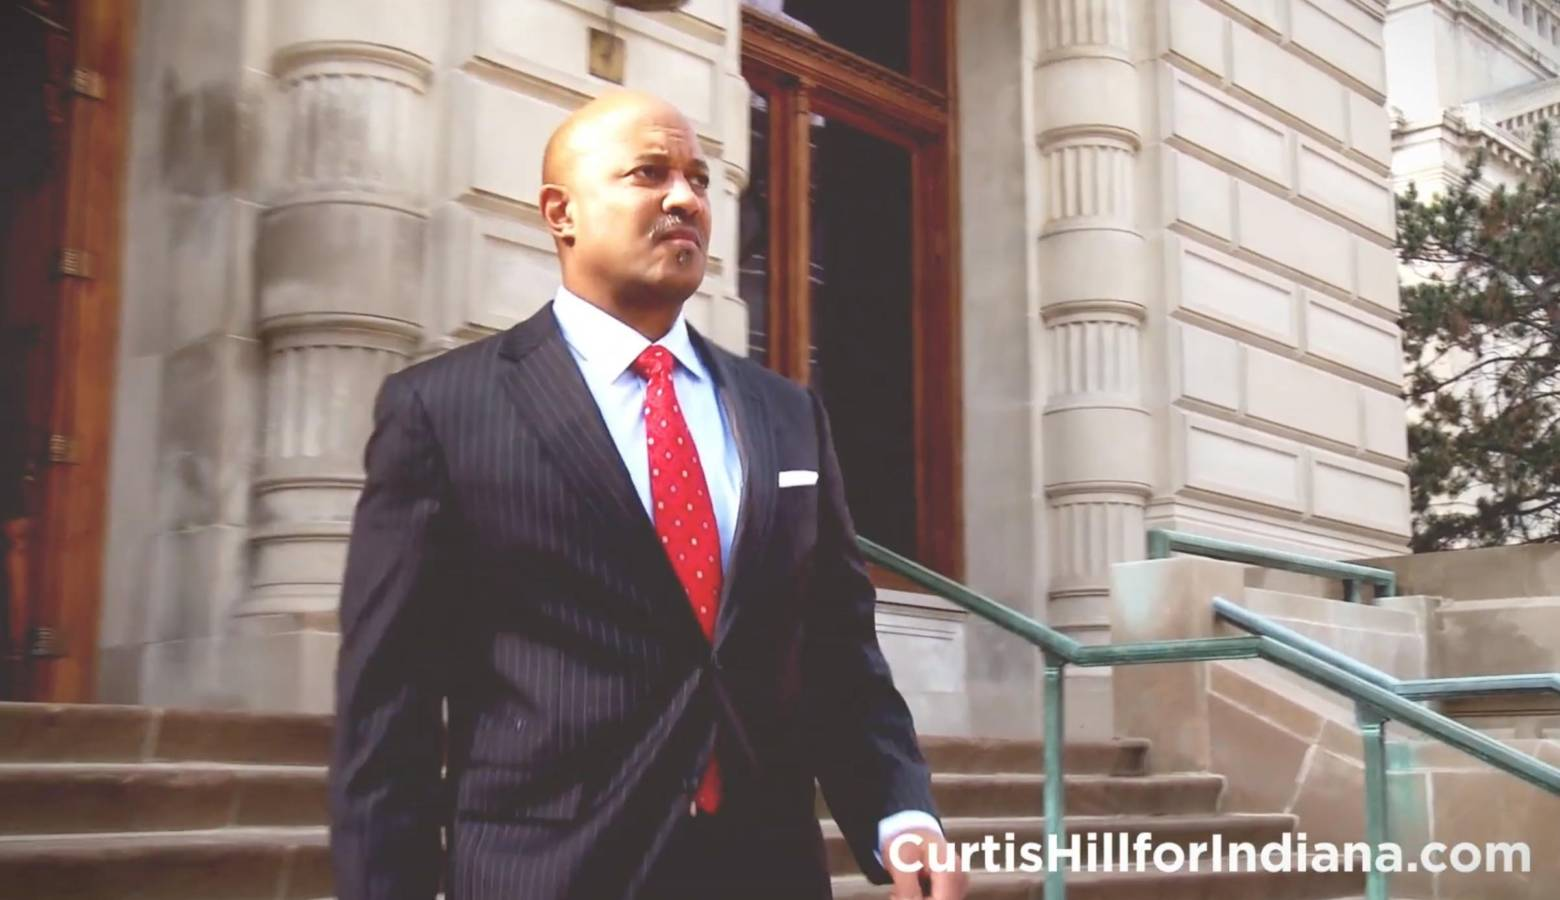 Attorney General Curtis Hill announced his re-election bid via a campaign video. (Curtis Hill for Indiana/Youtube)